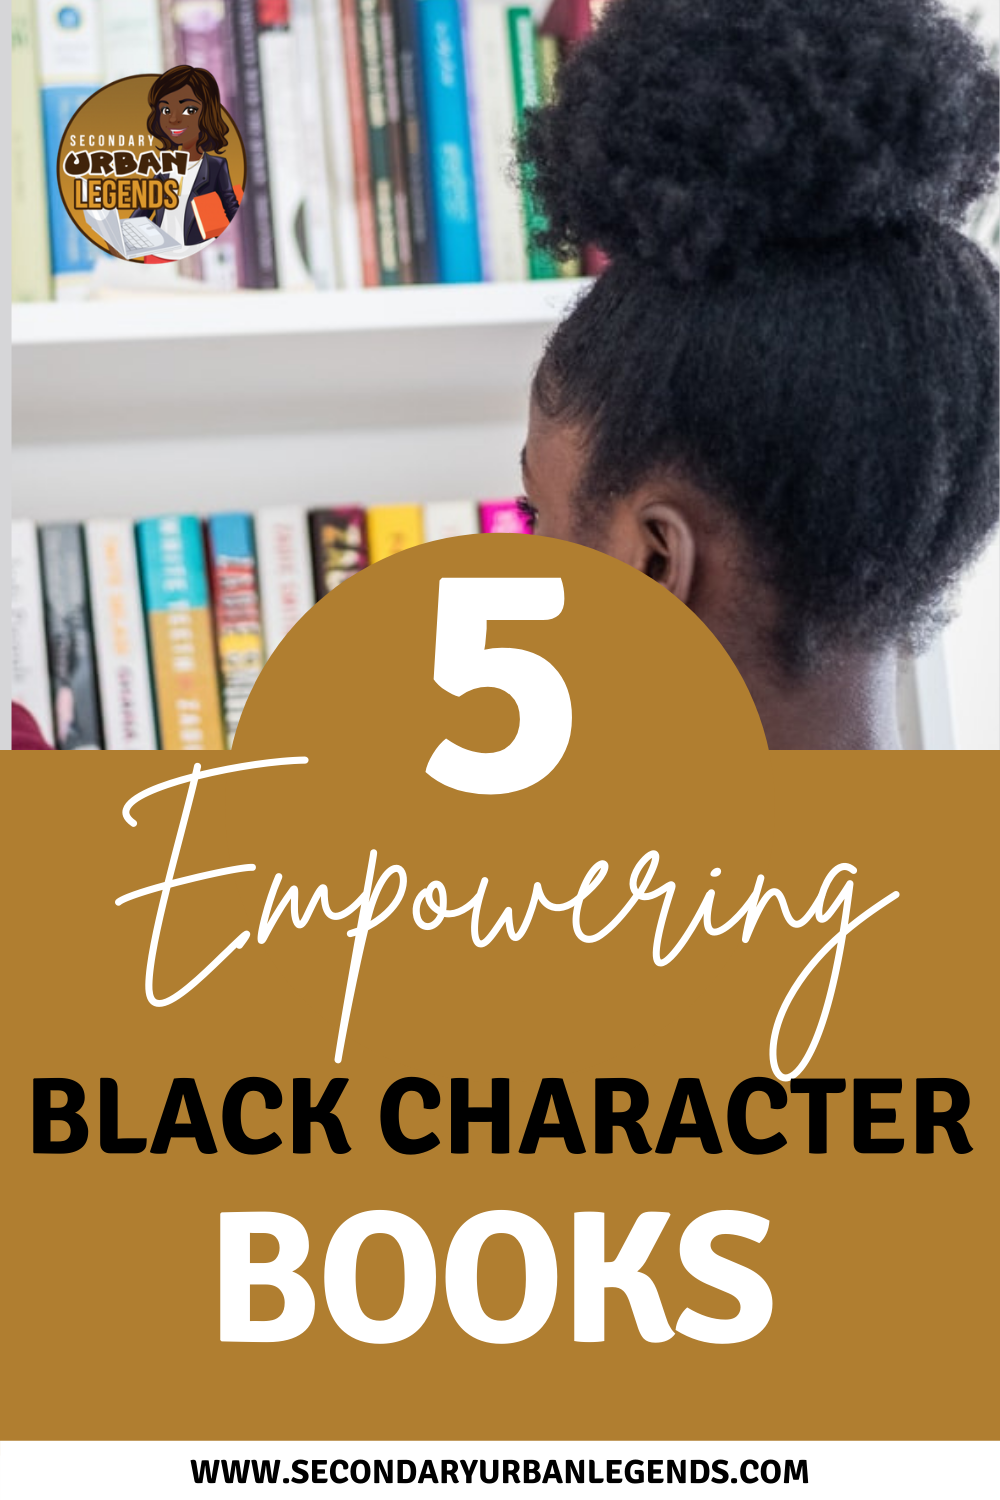 5 Empowering Black Character Books